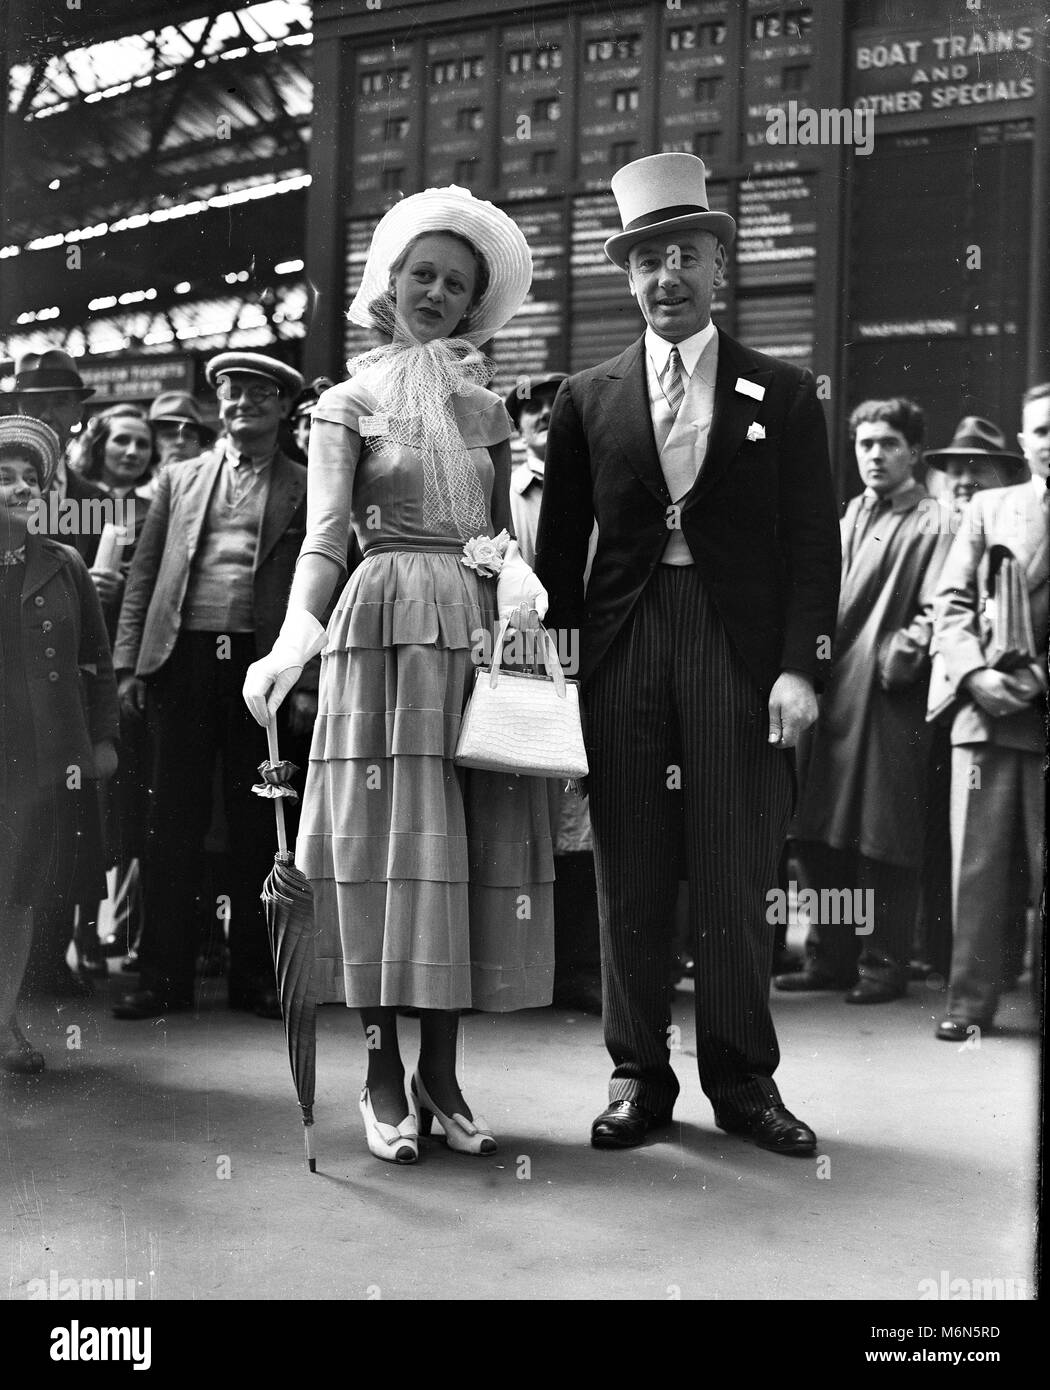 Turning heads on their way to  Royal Ascot 1948 Mr and Mrs Norman Coppock dressed in style for a day at he races. - Stock Image